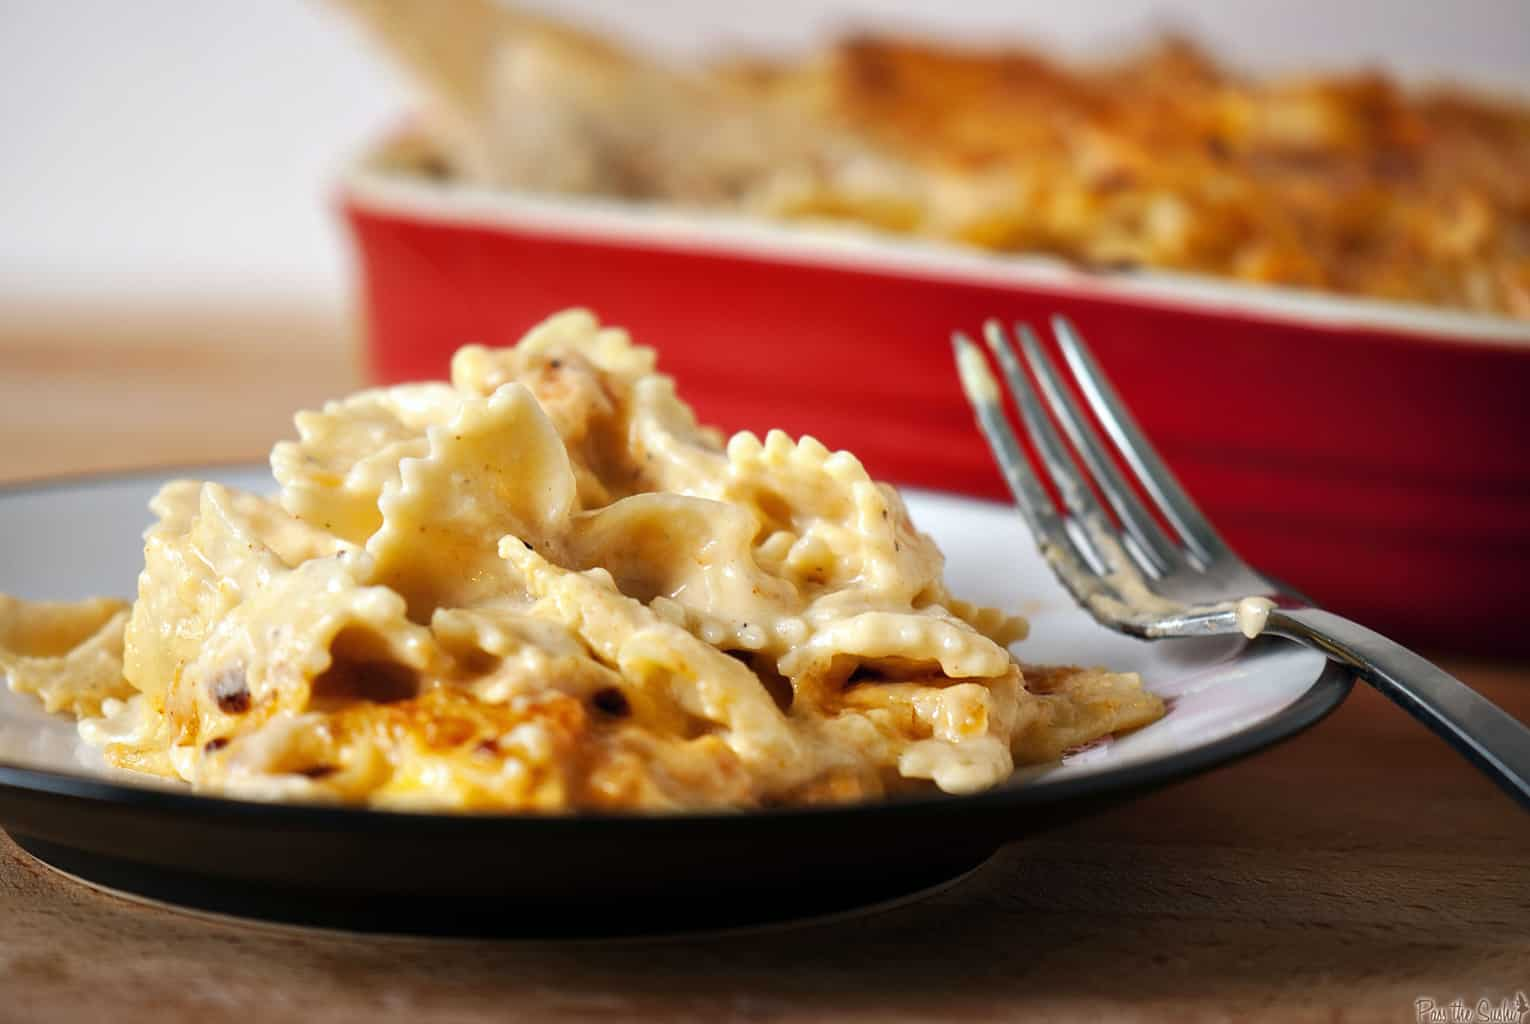 Lightened Up: Three-Cheese Macaroni